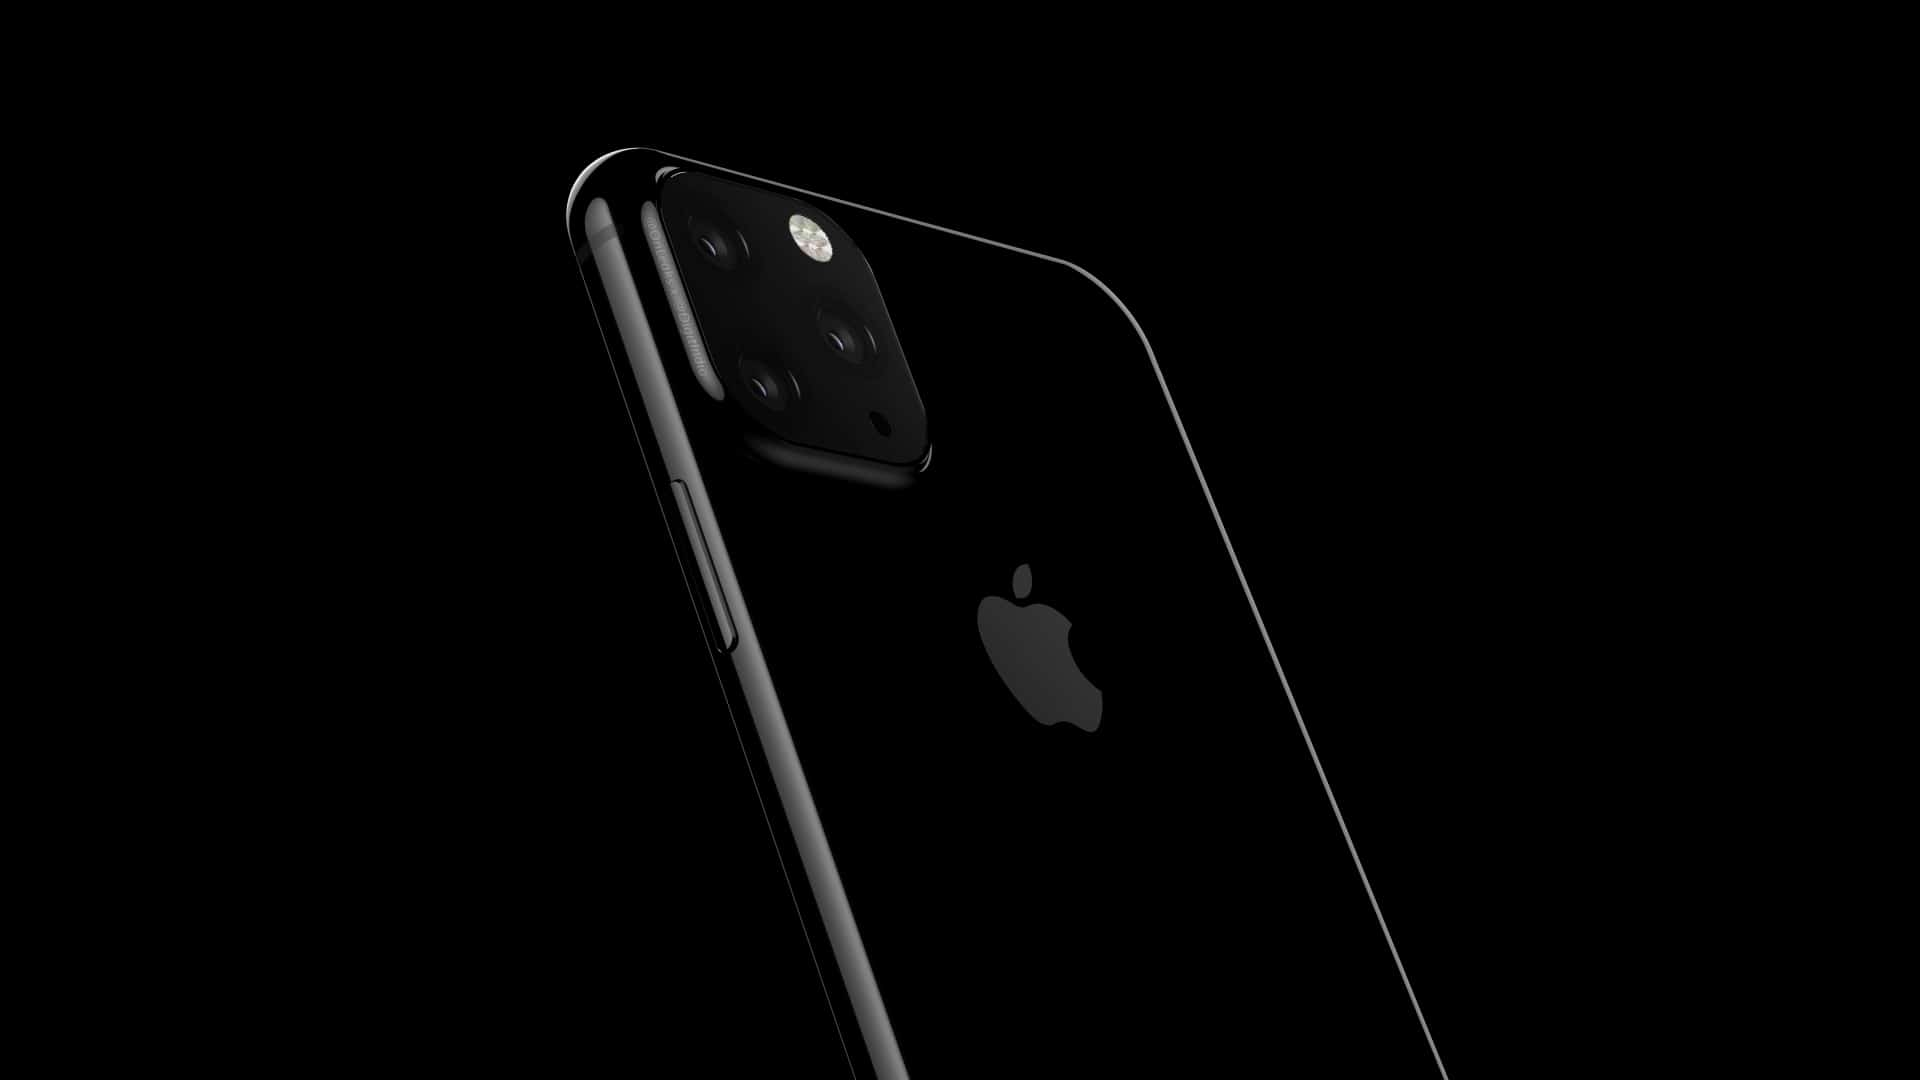 enders-allegedly-reveal-design-of-2019-iphone-xi-with-three-cameras-video-1